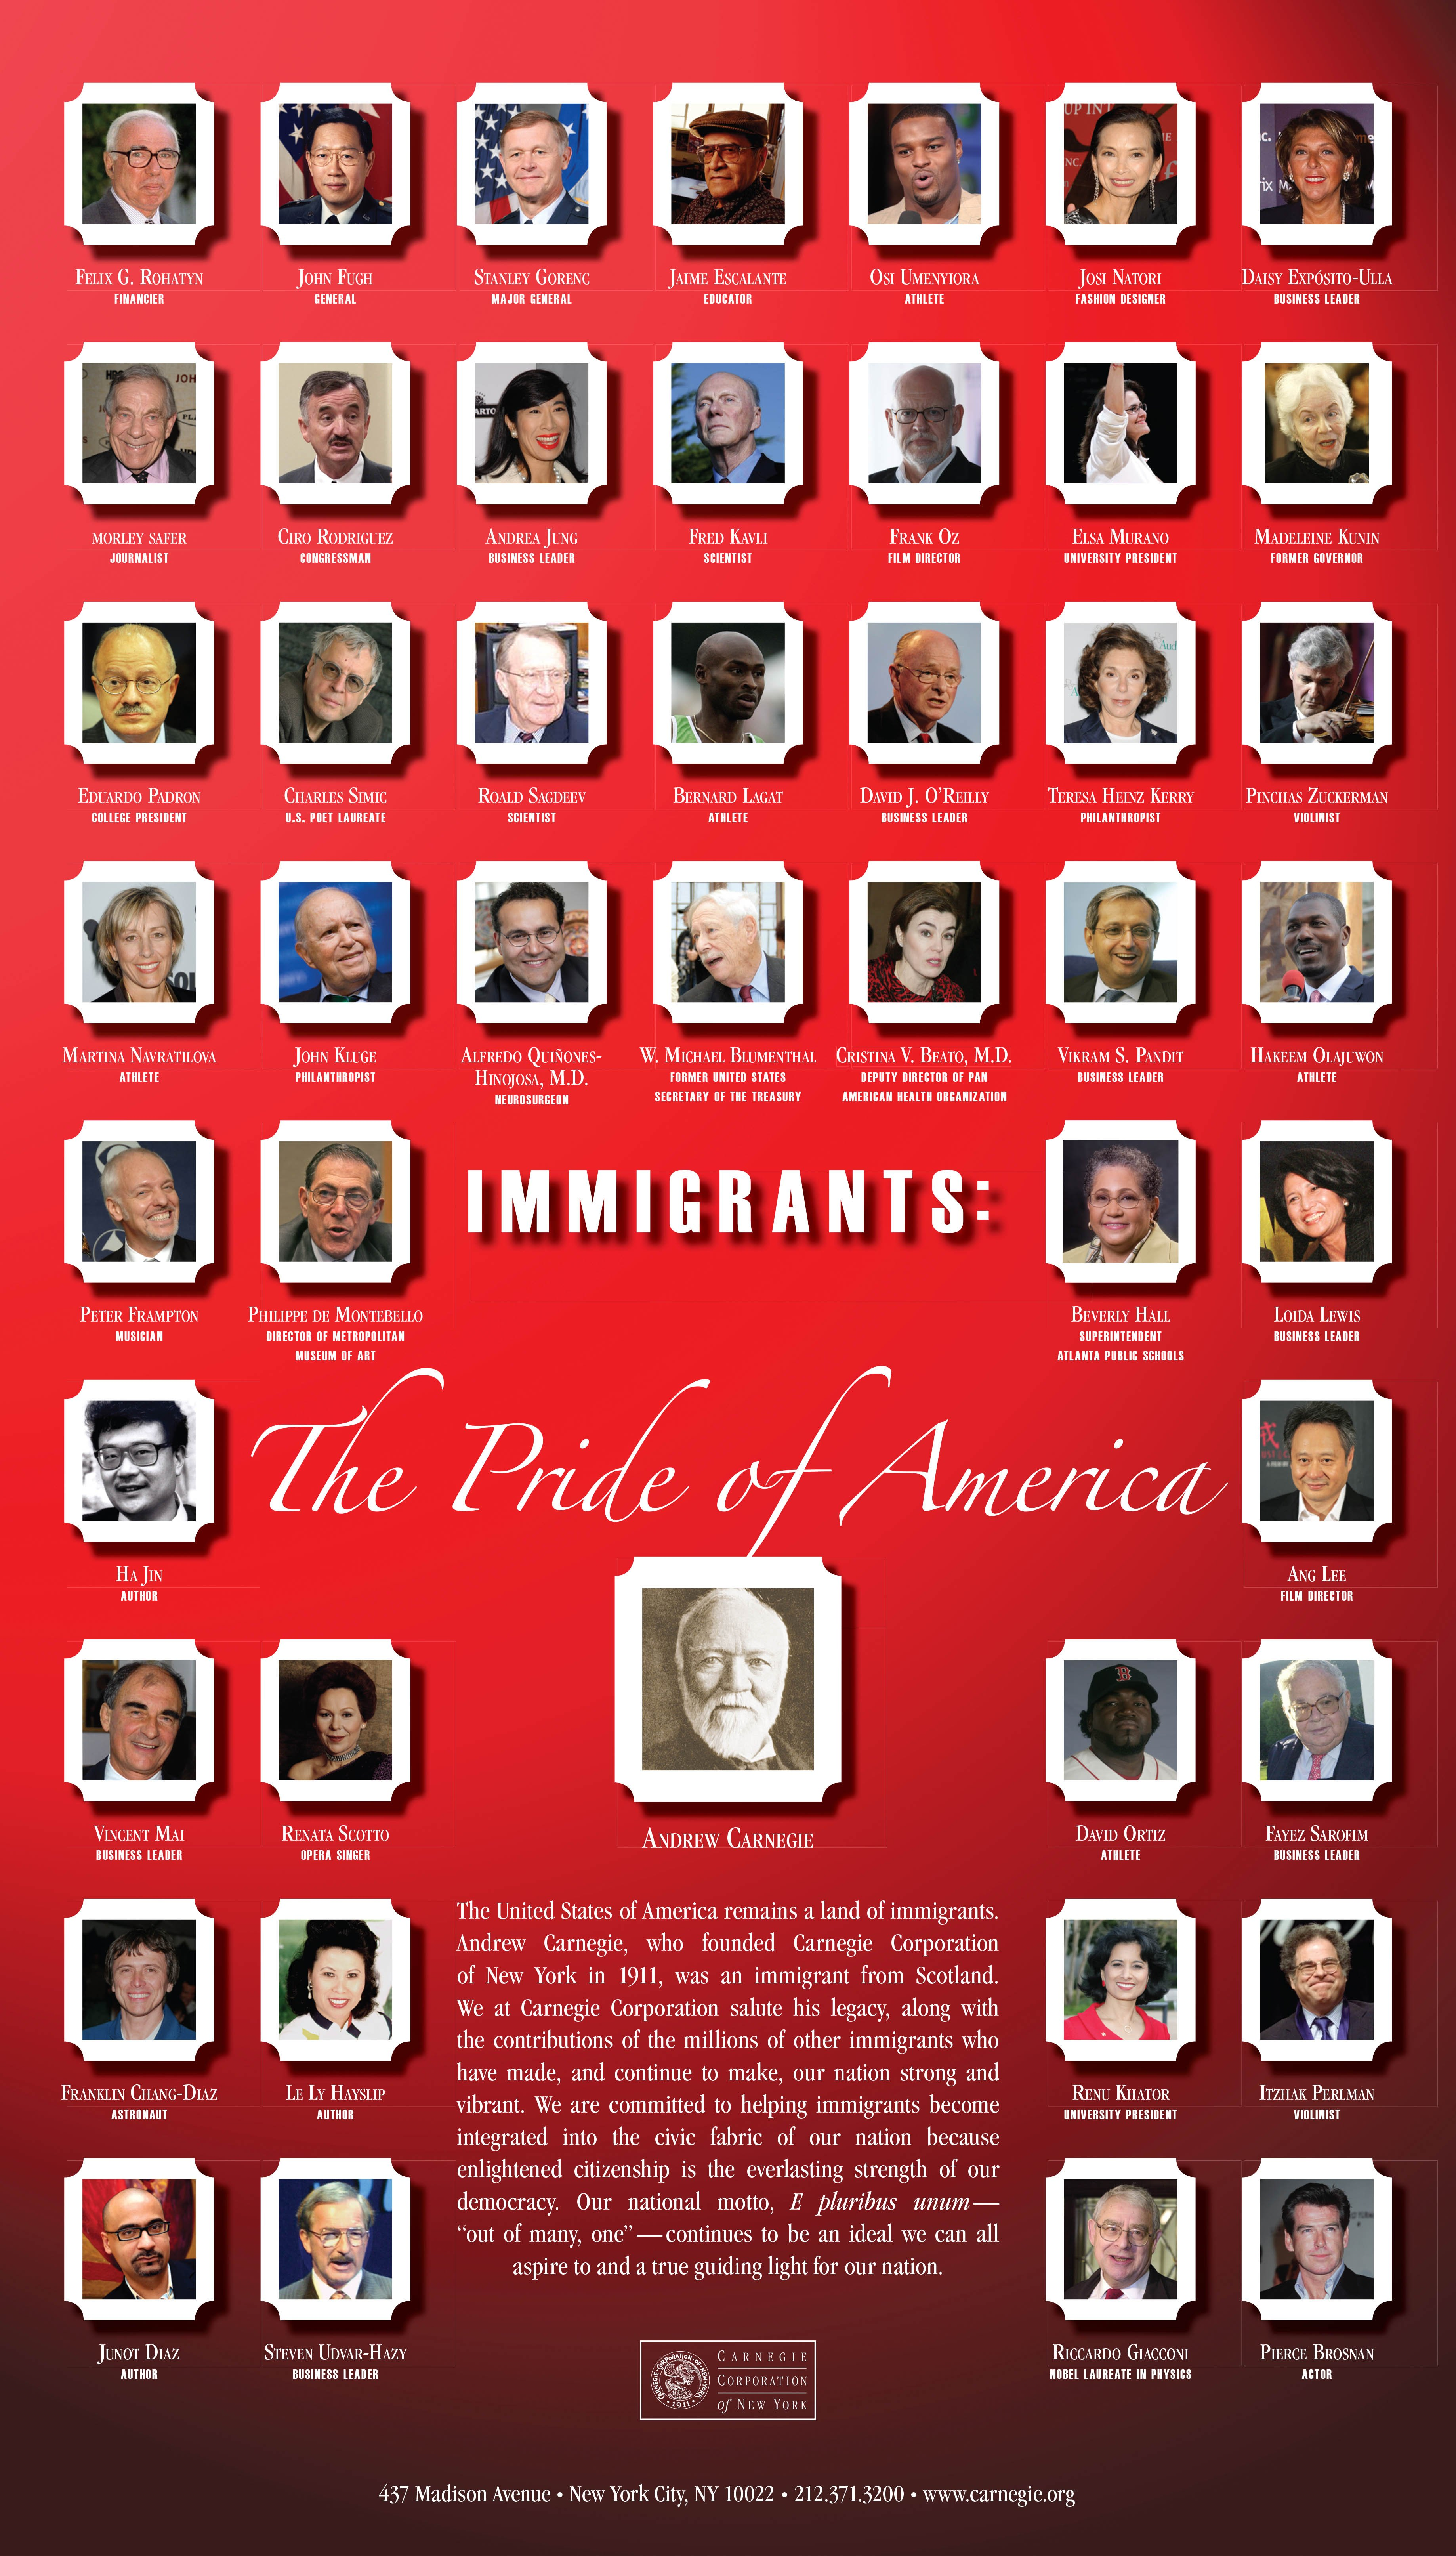 Immigrants, The Pride of America